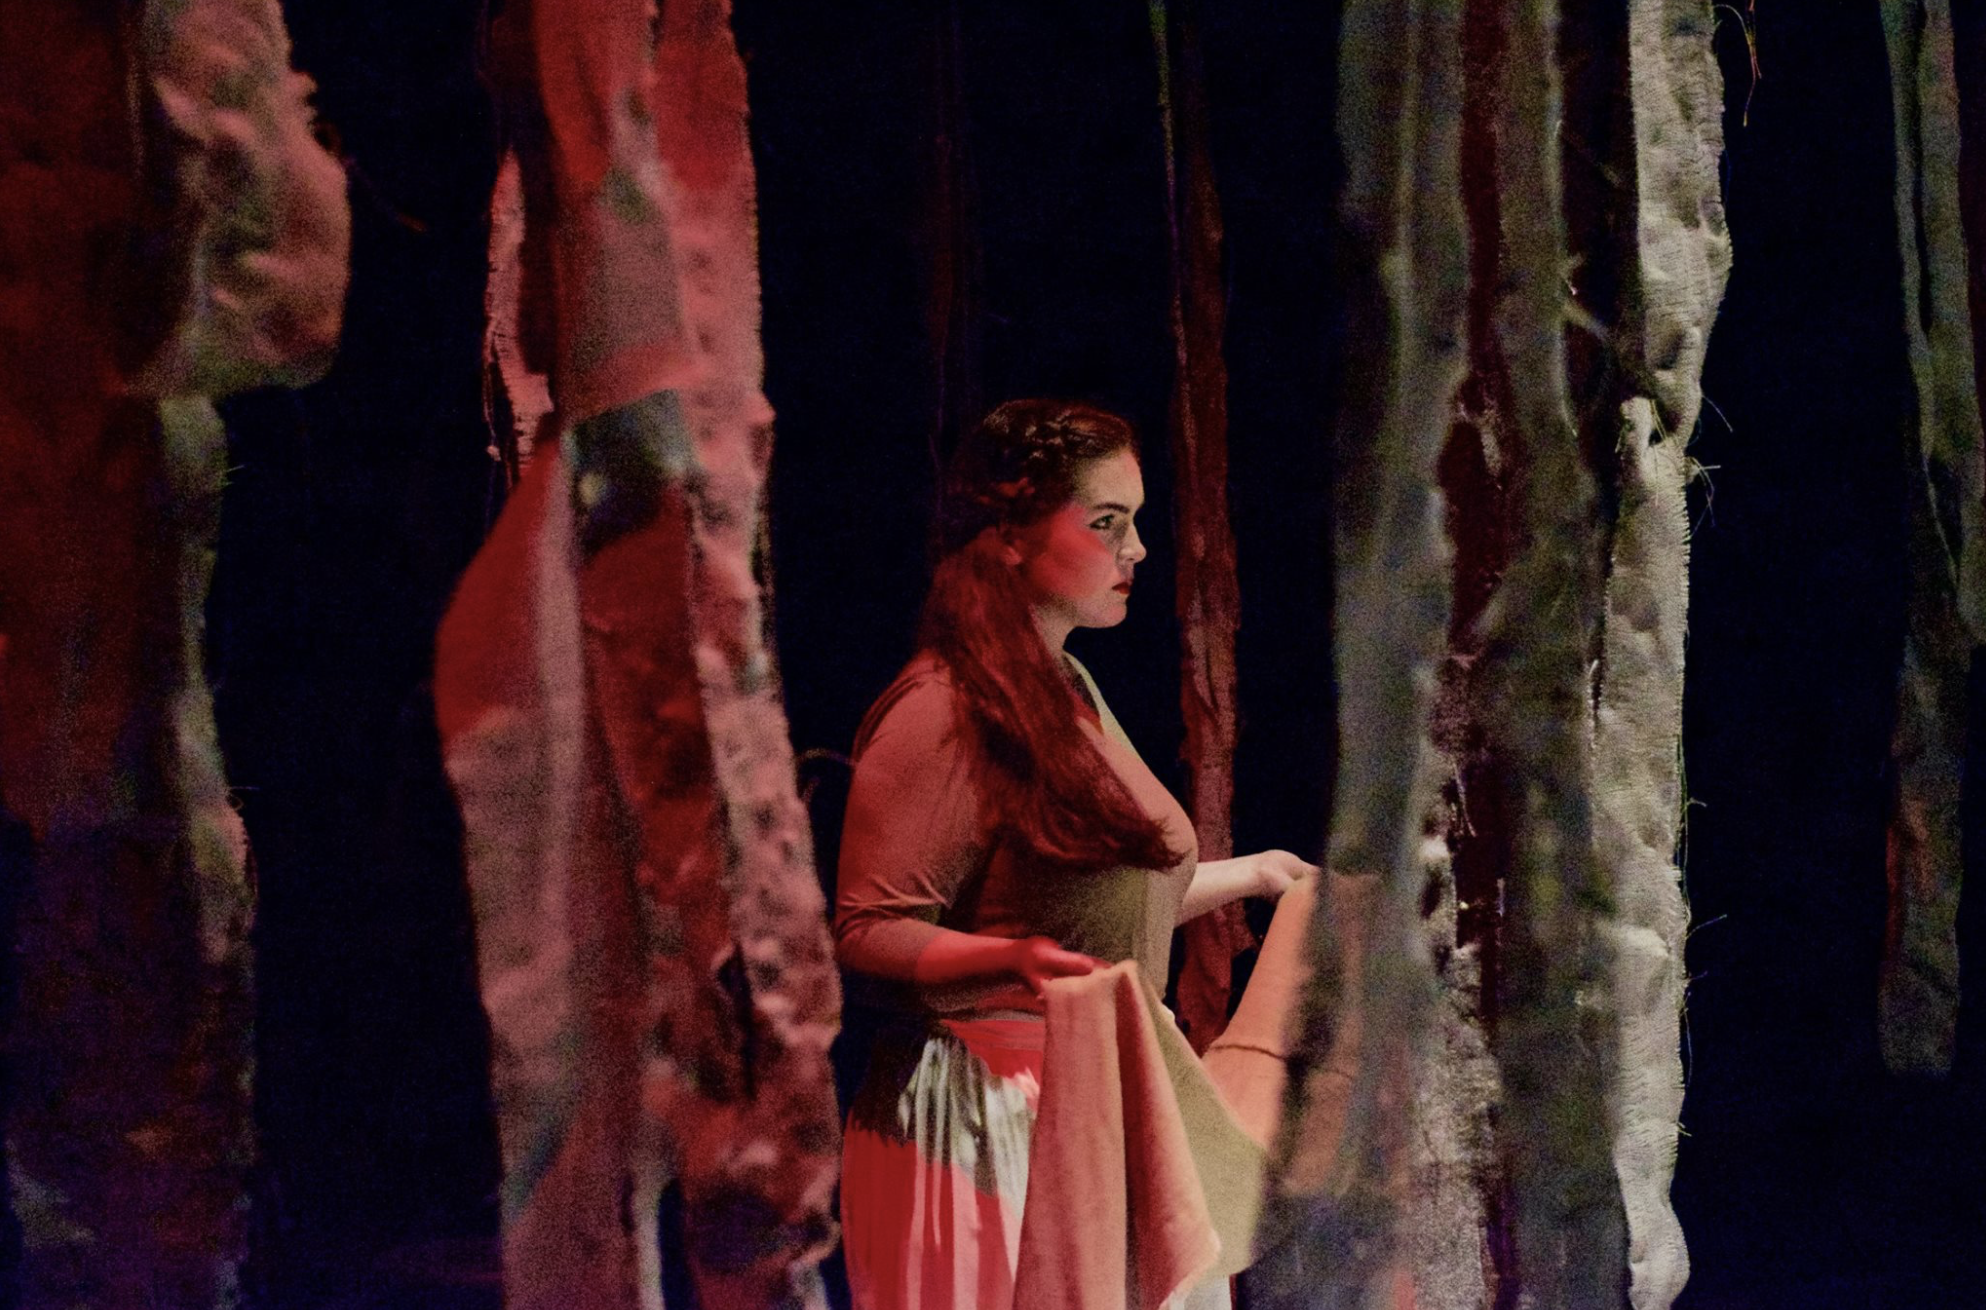 Ashlynn Butrovich (junior) glares fiercely into the audience as Antigone.  Picture courtesy of NGU Theatre Facebook page